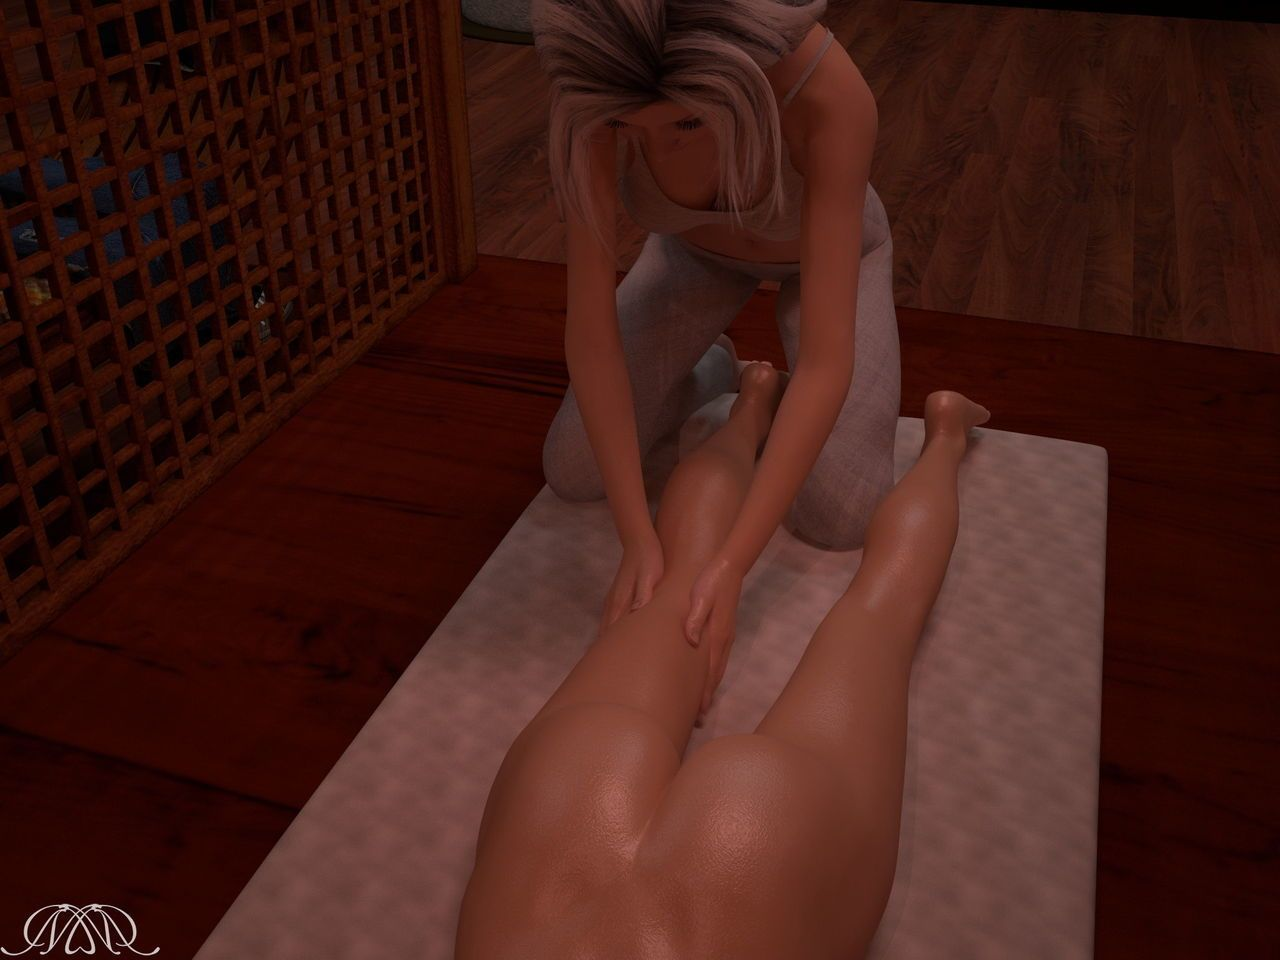 [Morfium] Afterwork Massage - part 6